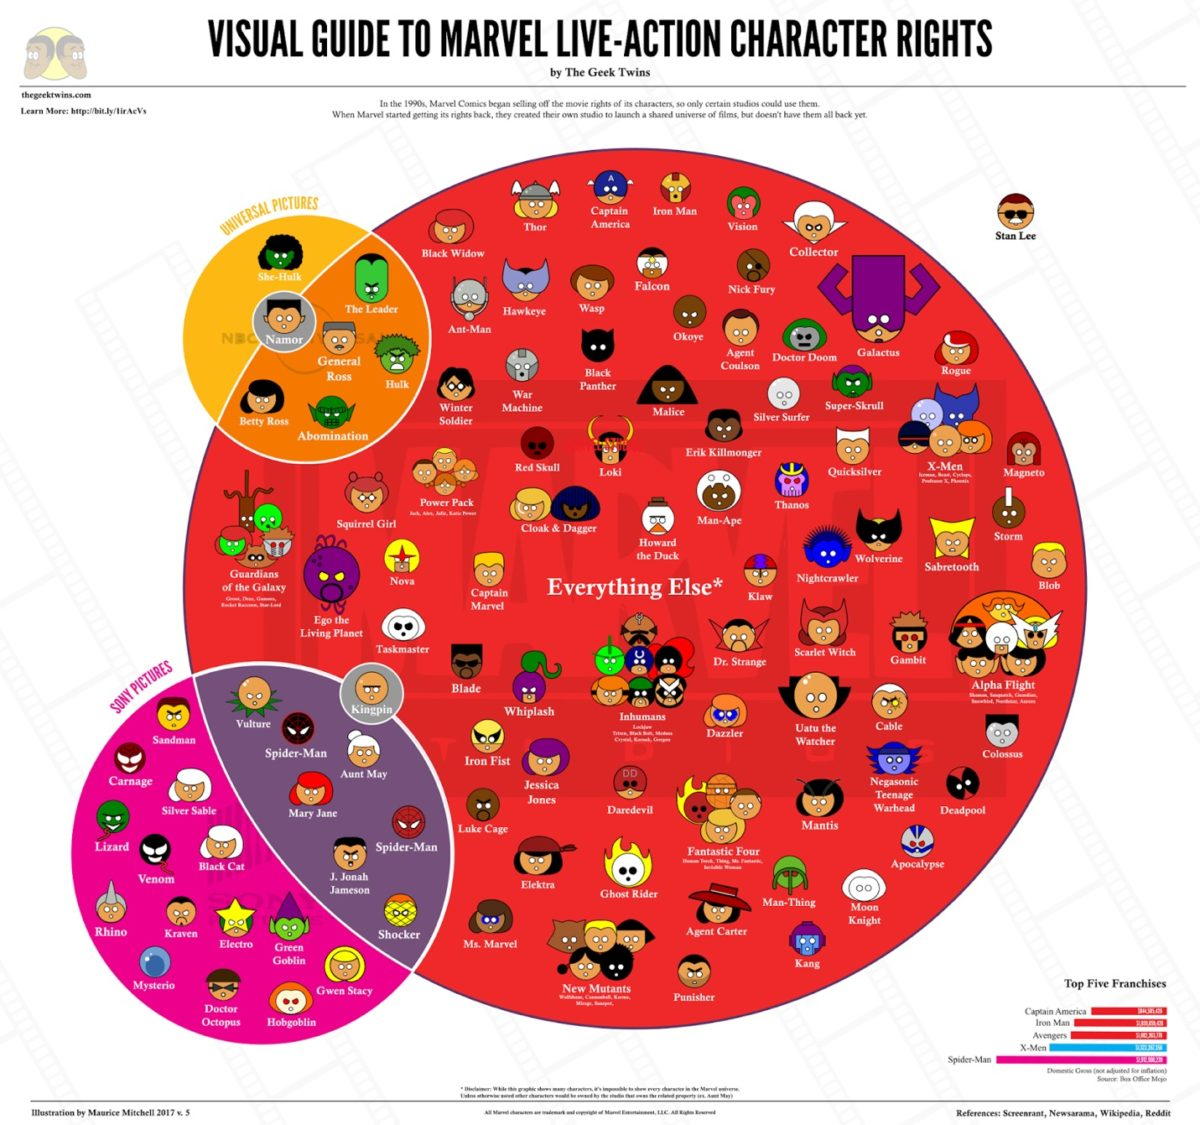 Diagram of Marvel Comics character movie rights.